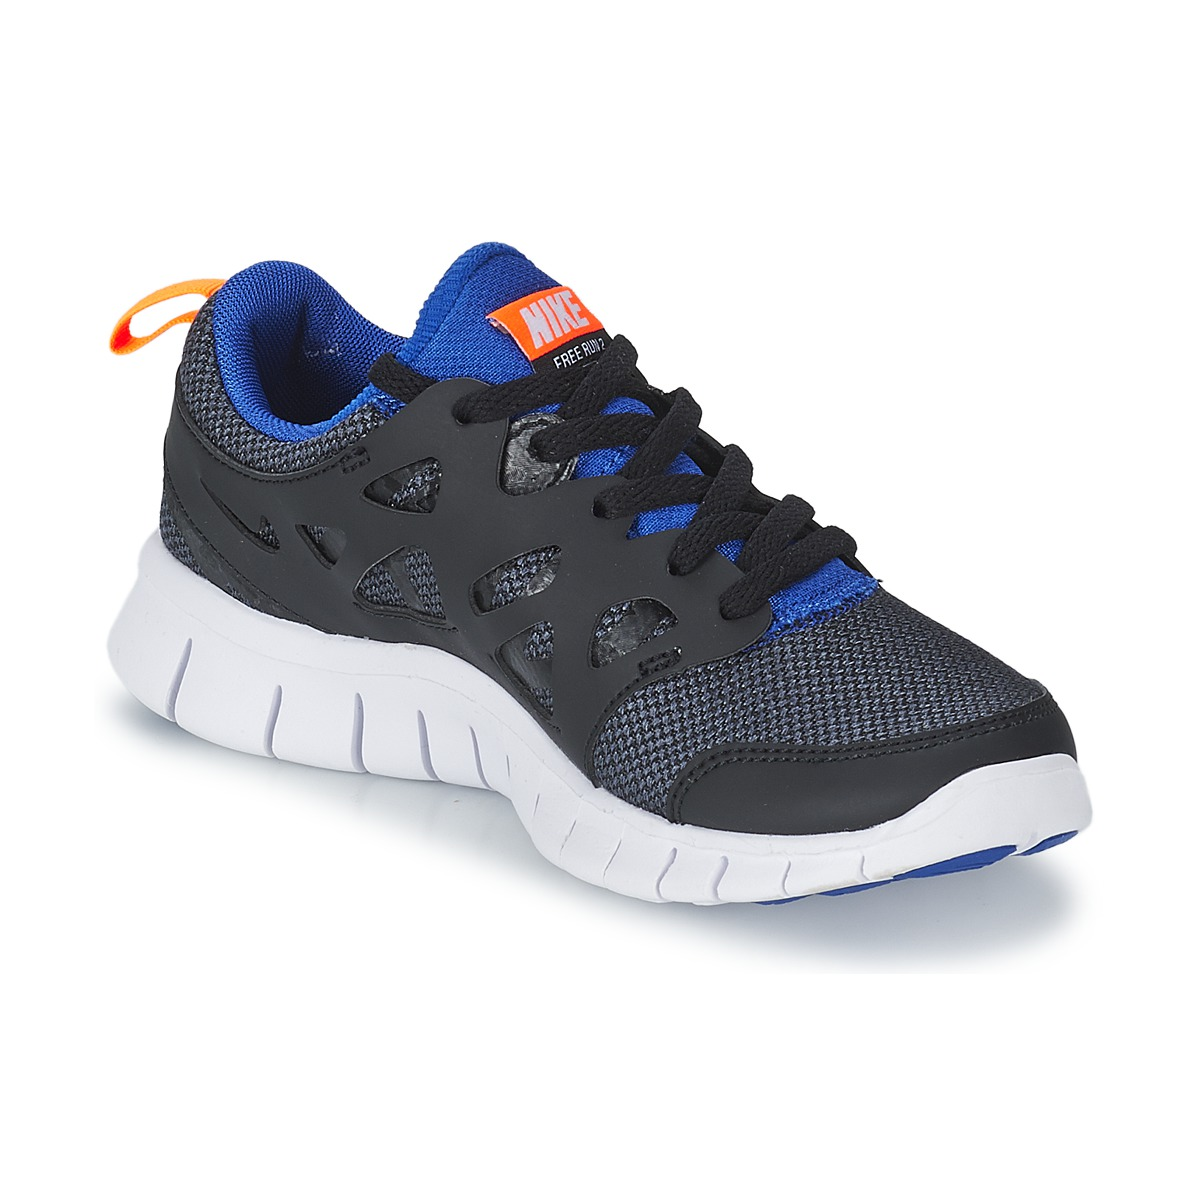 nike free run 2 junior black blue free delivery with spartoo uk shoes low top trainers. Black Bedroom Furniture Sets. Home Design Ideas